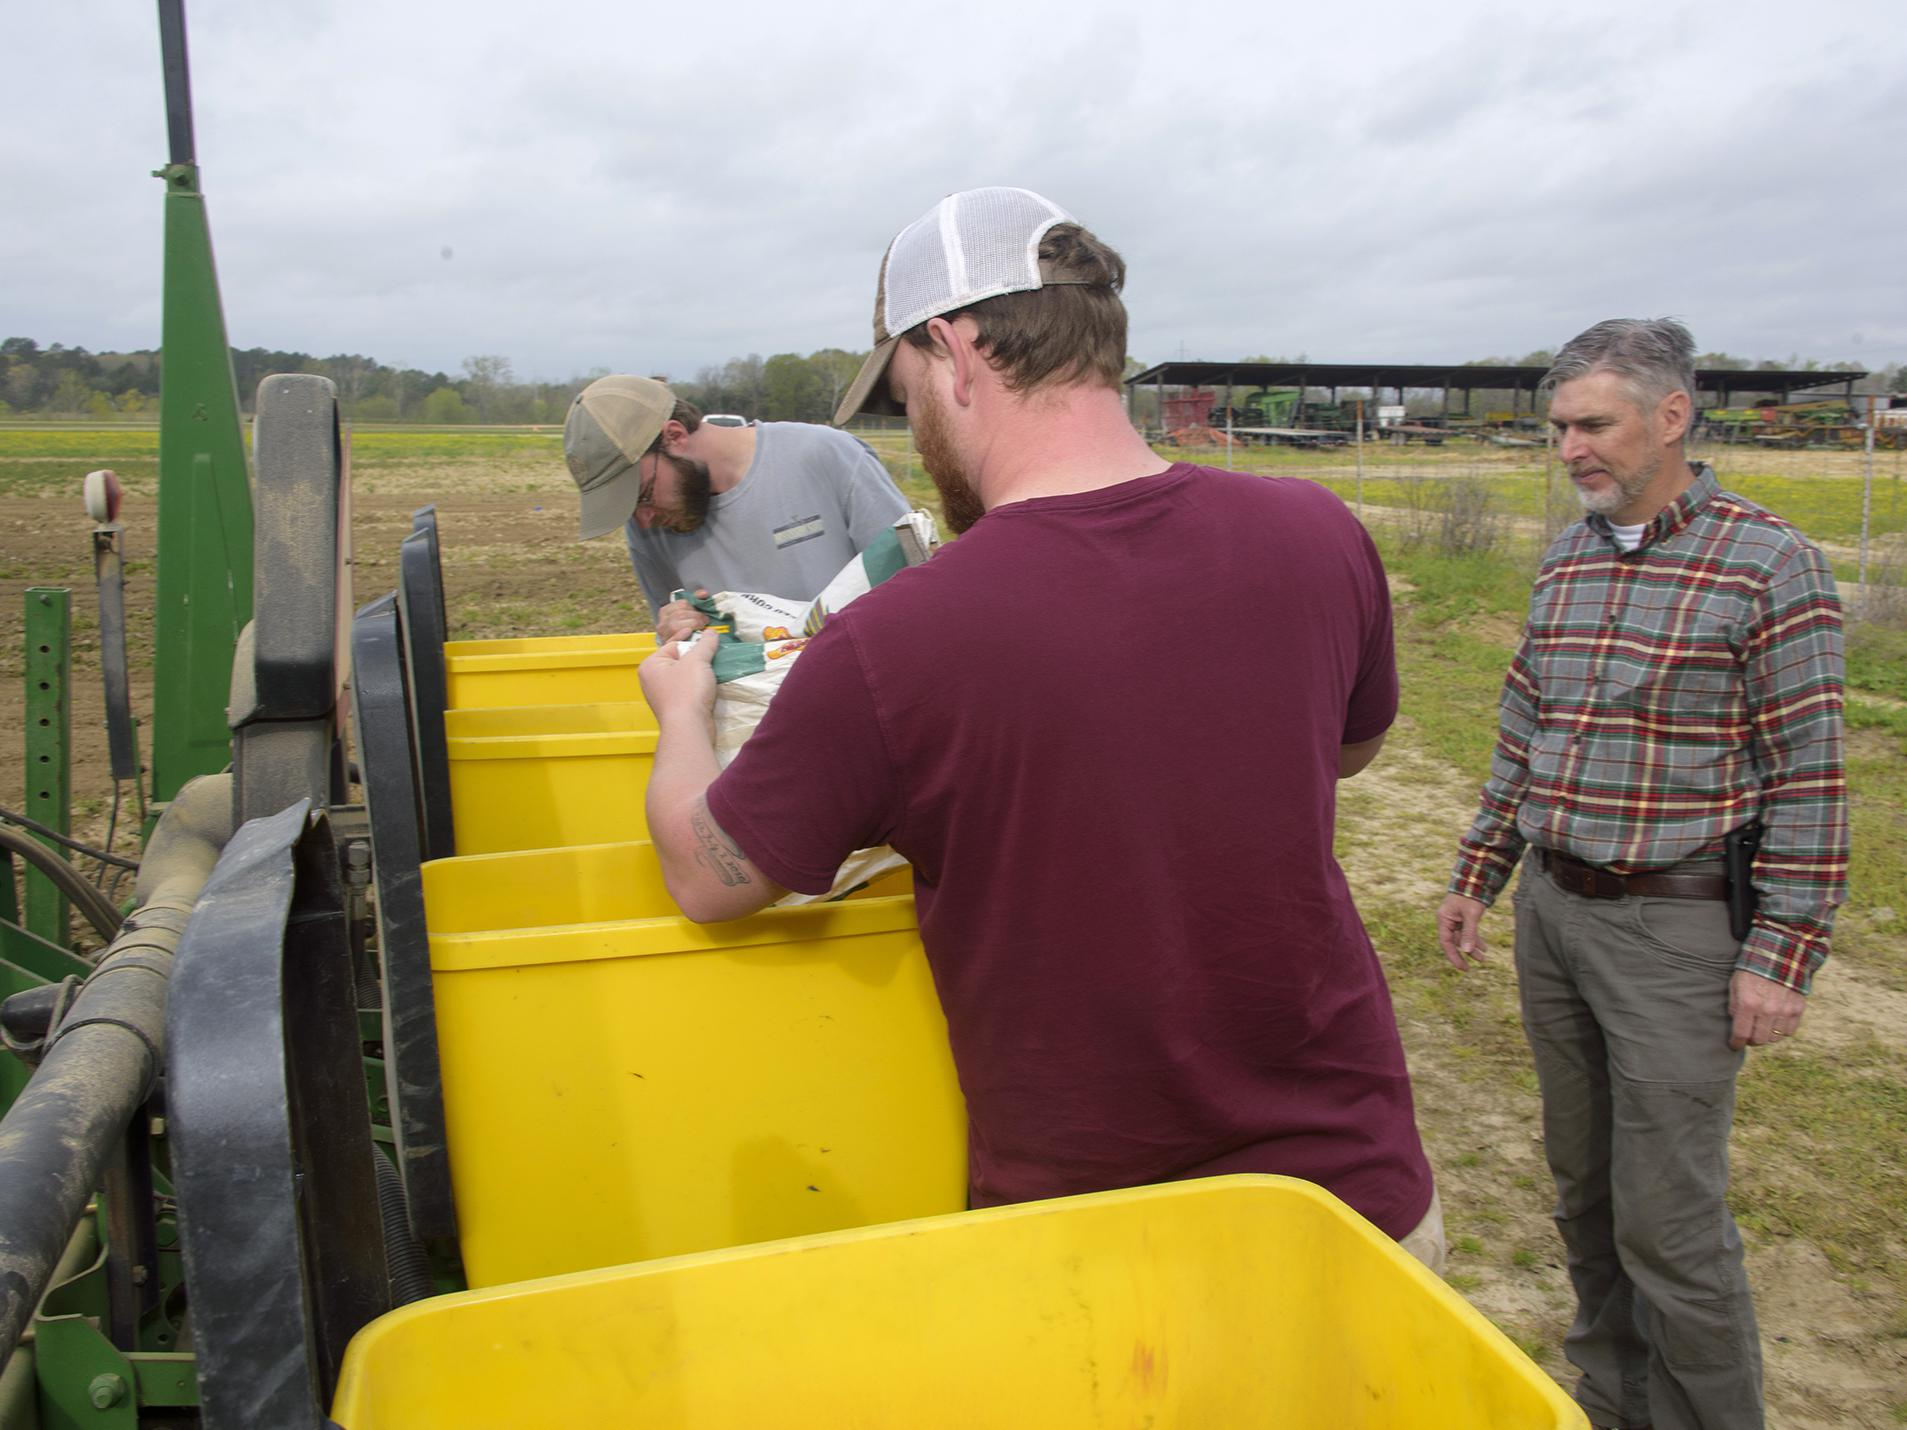 Two young men pour seed into bright yellow bins while a man watches.